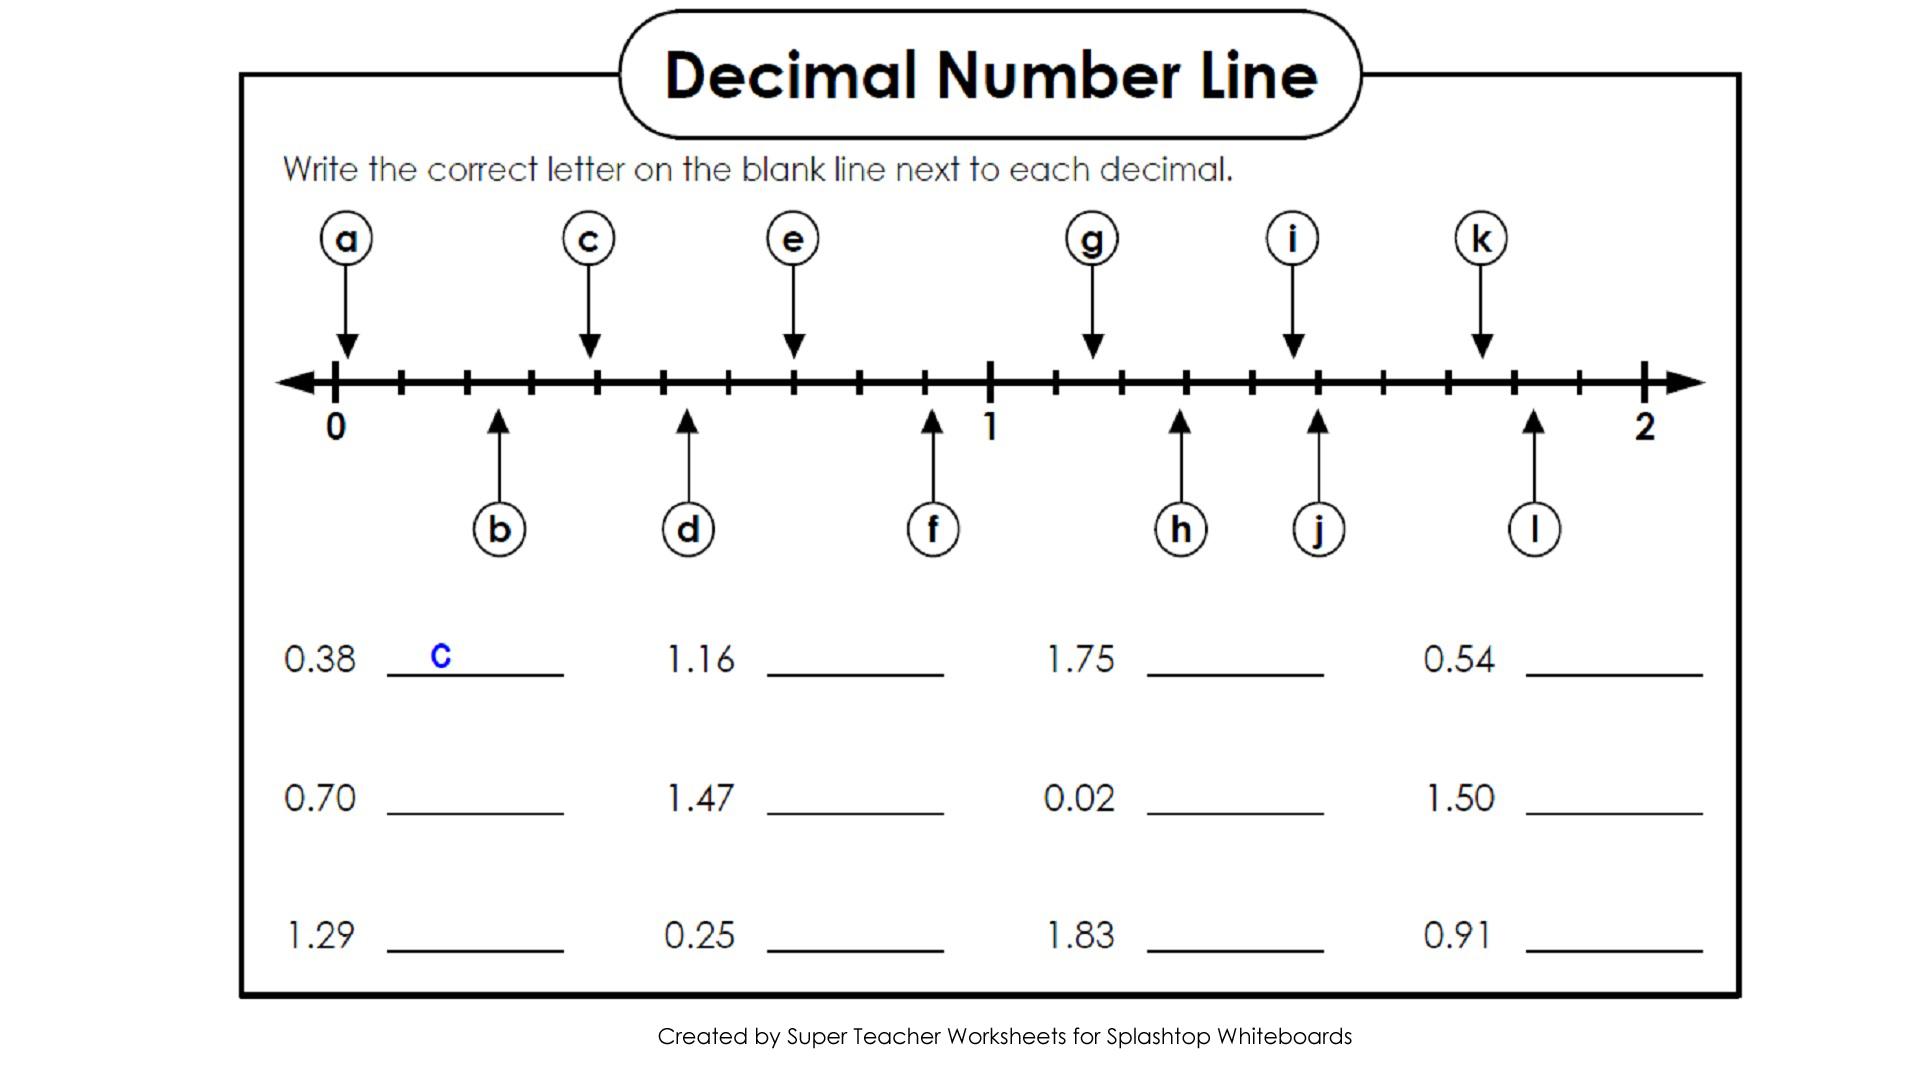 decimal number line worksheet – Decimal Number Lines Worksheets